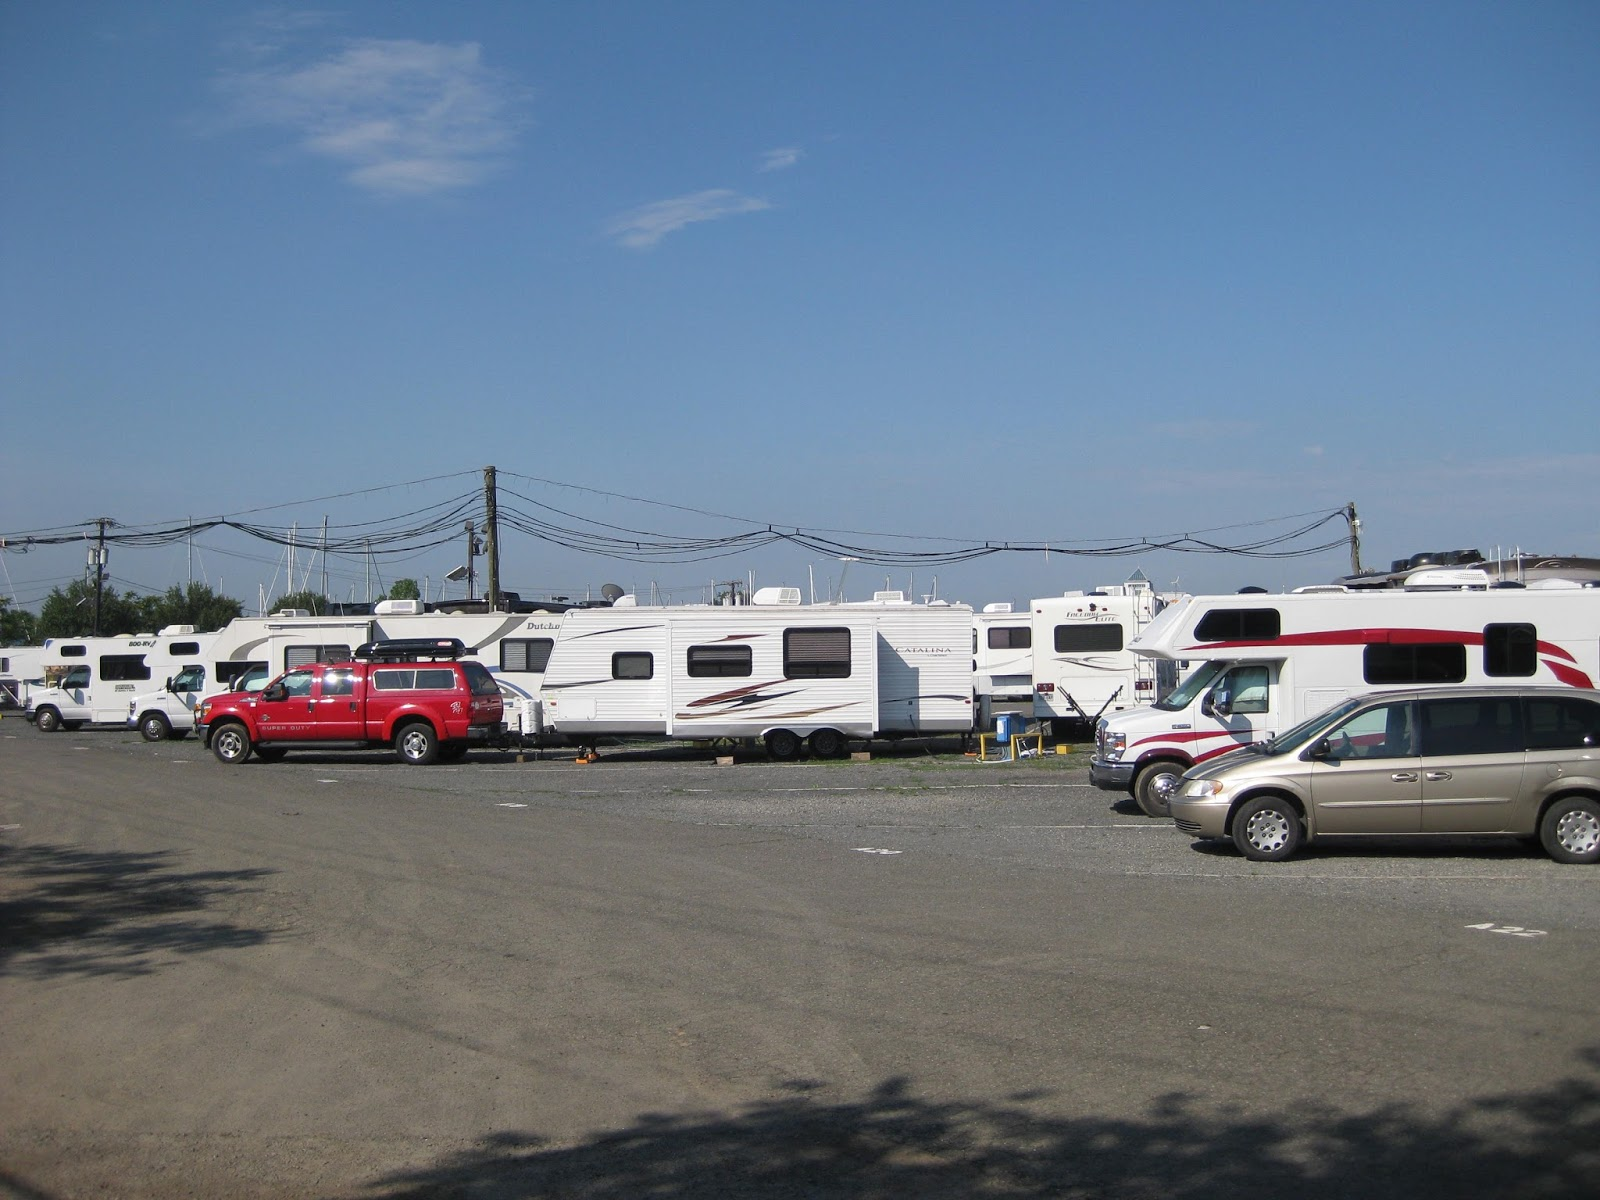 Considering location liberty harbor rv park is an excellent choice for rvers who desire to spend a few days in new york city we were expecting parking lot